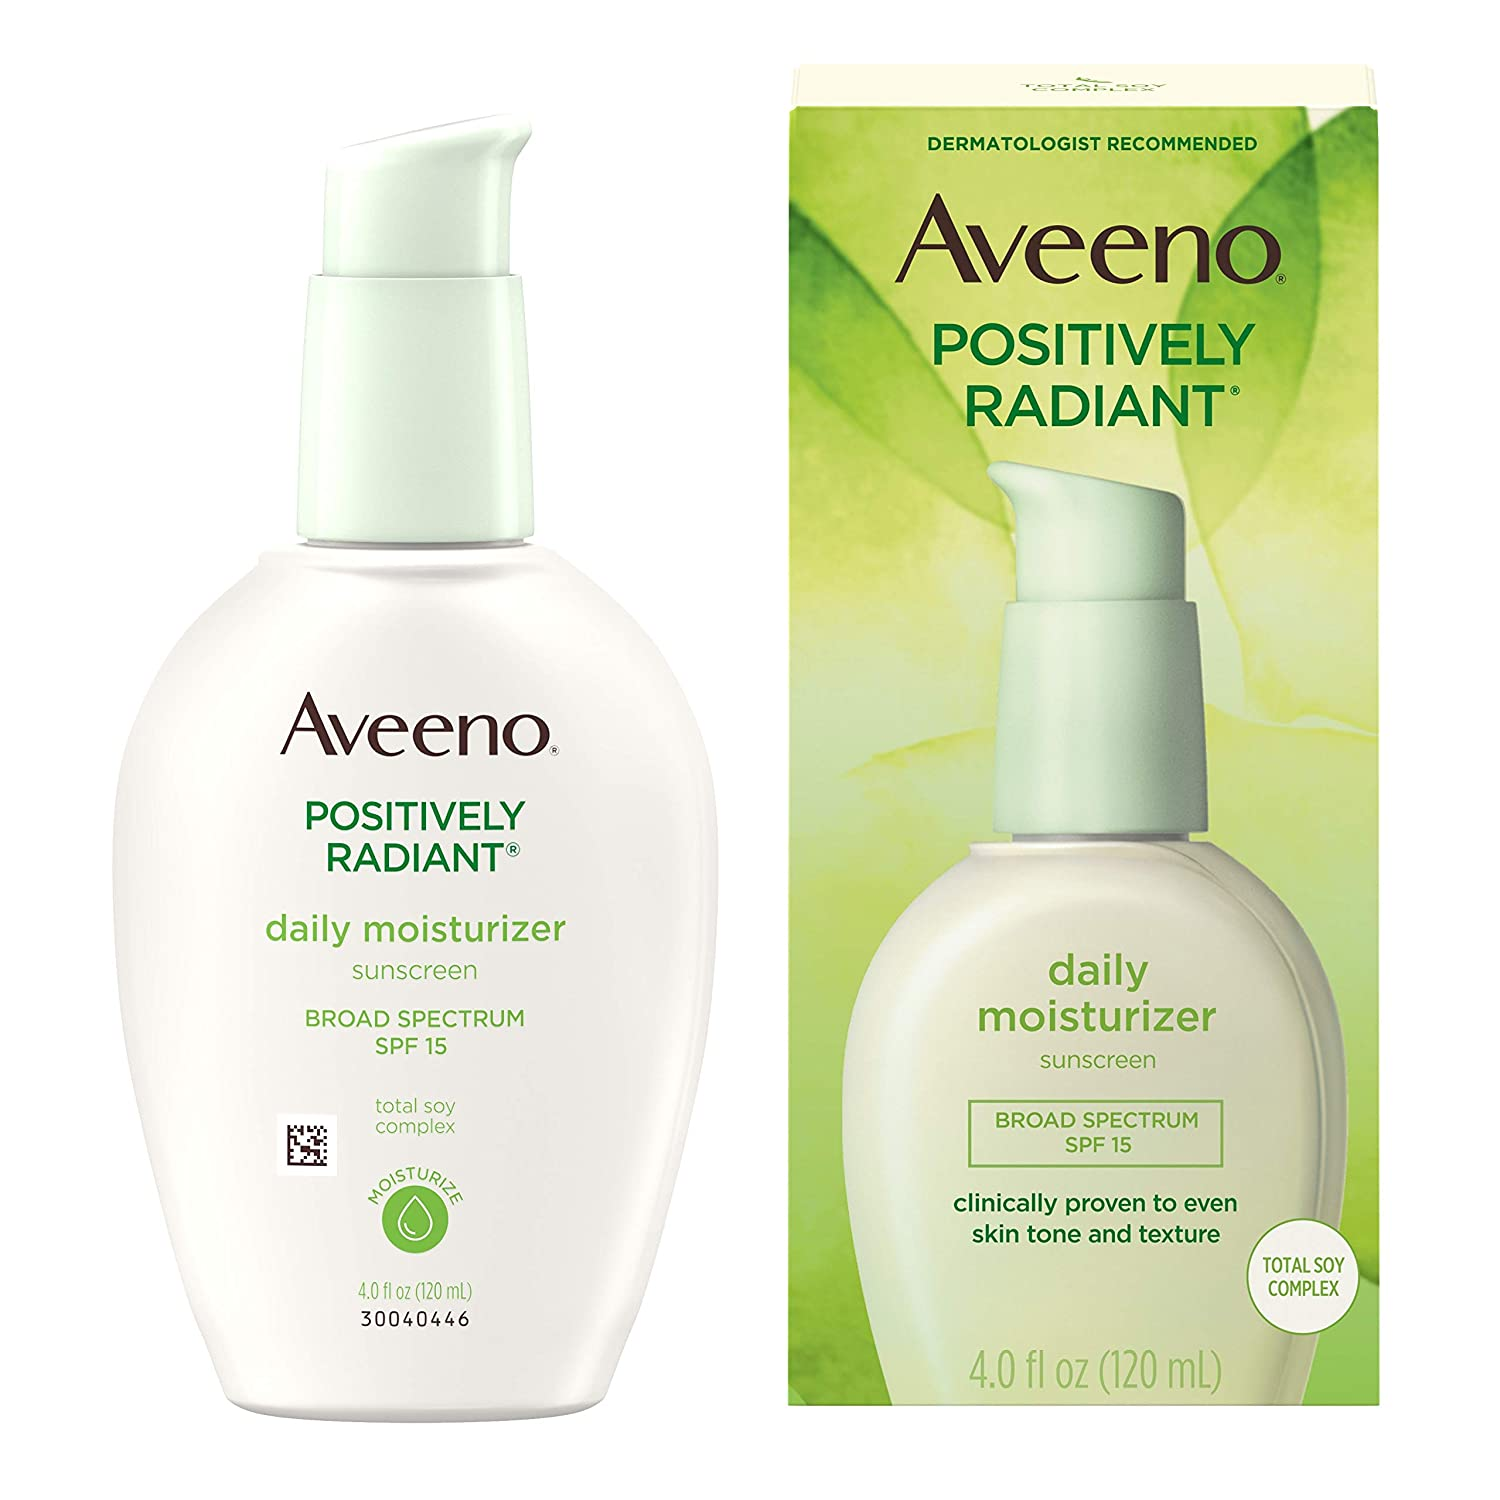 Aveeno Positively Radiant Daily Face Moisturizer with Broad Spectrum SPF 15 Sunscreen and Soy Extract, 4 fl. Oz: Beauty